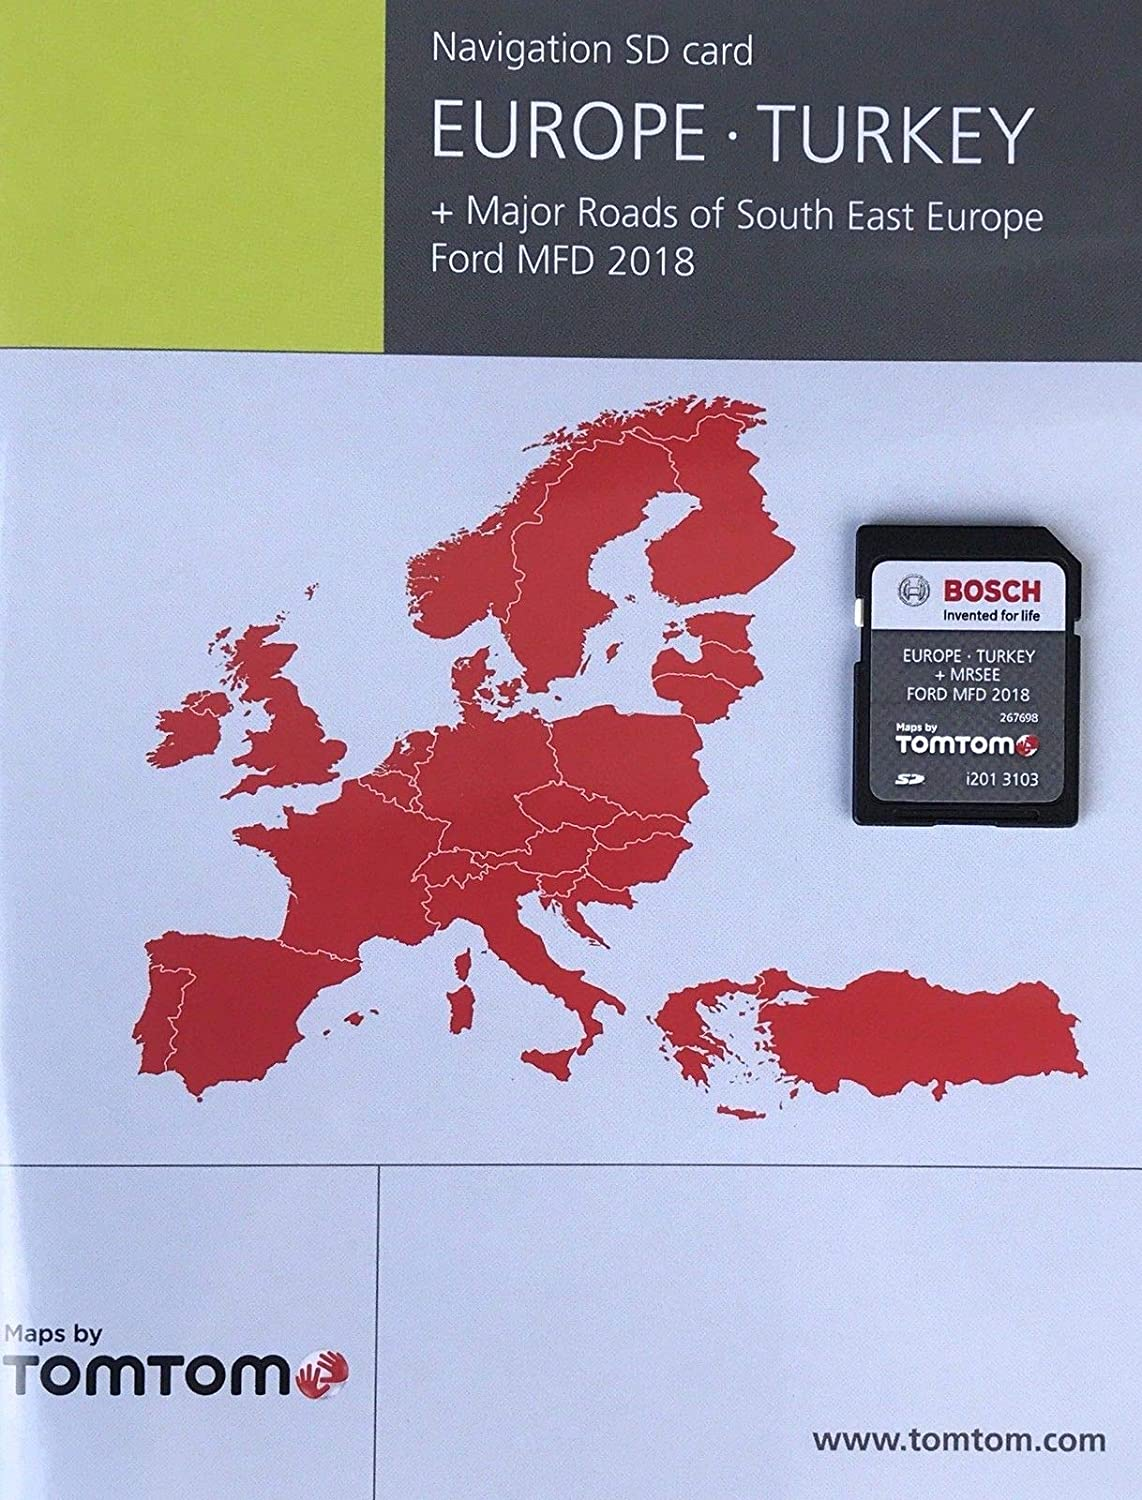 Ford MFD NAVIGATION SD Card MAP Western Europe 2018-2019